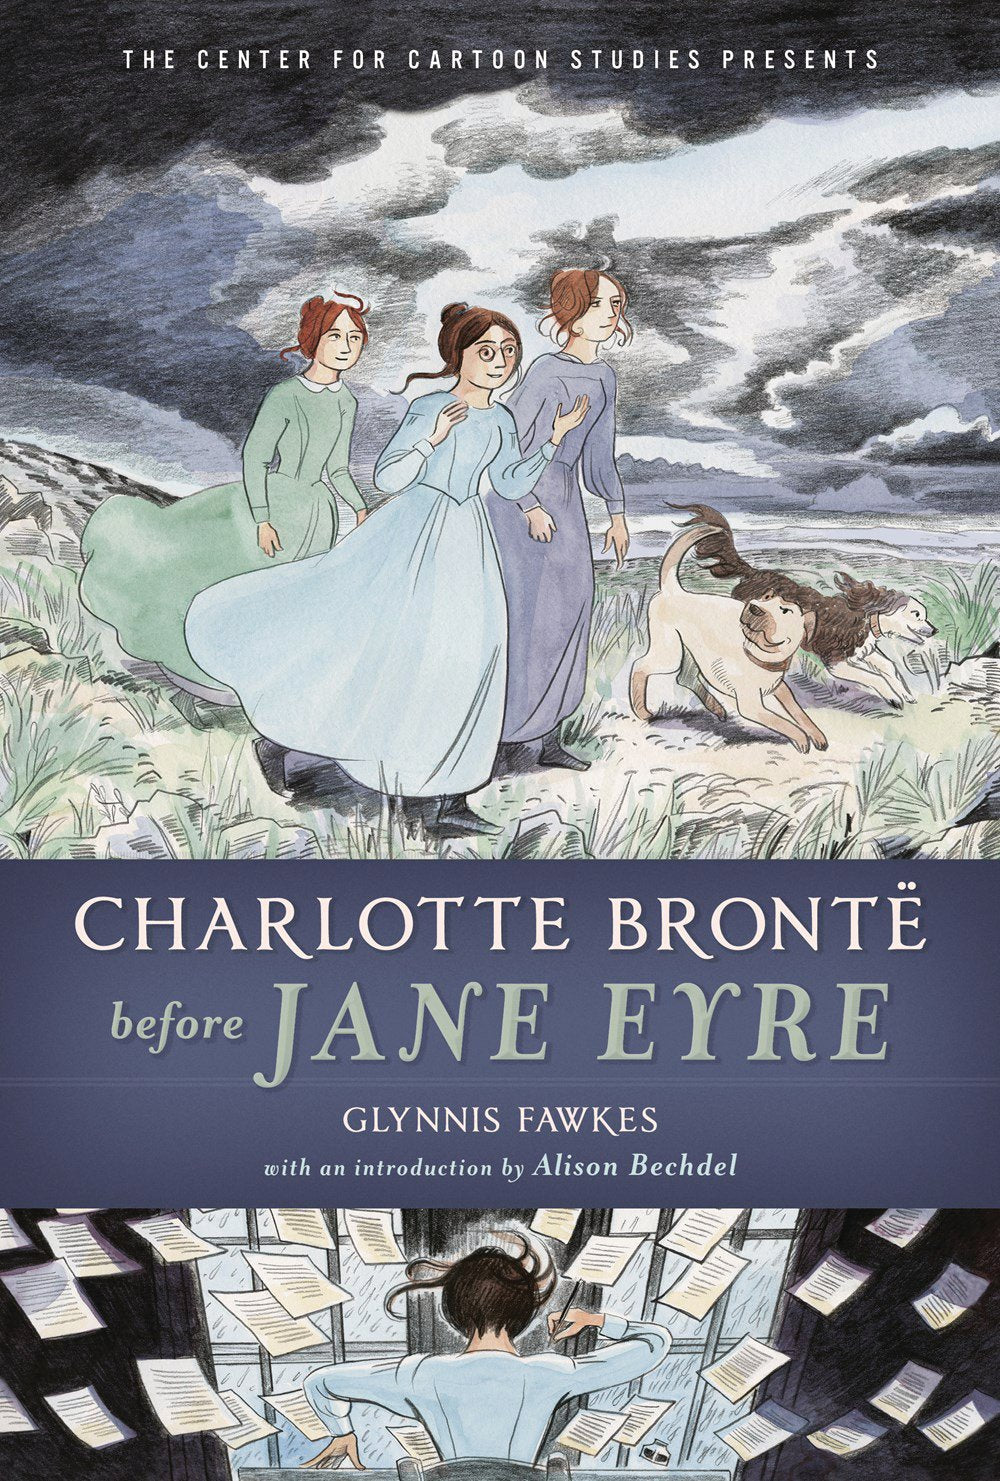 CHARLOTTE BRONTE BEFORE JANE EYRE GN